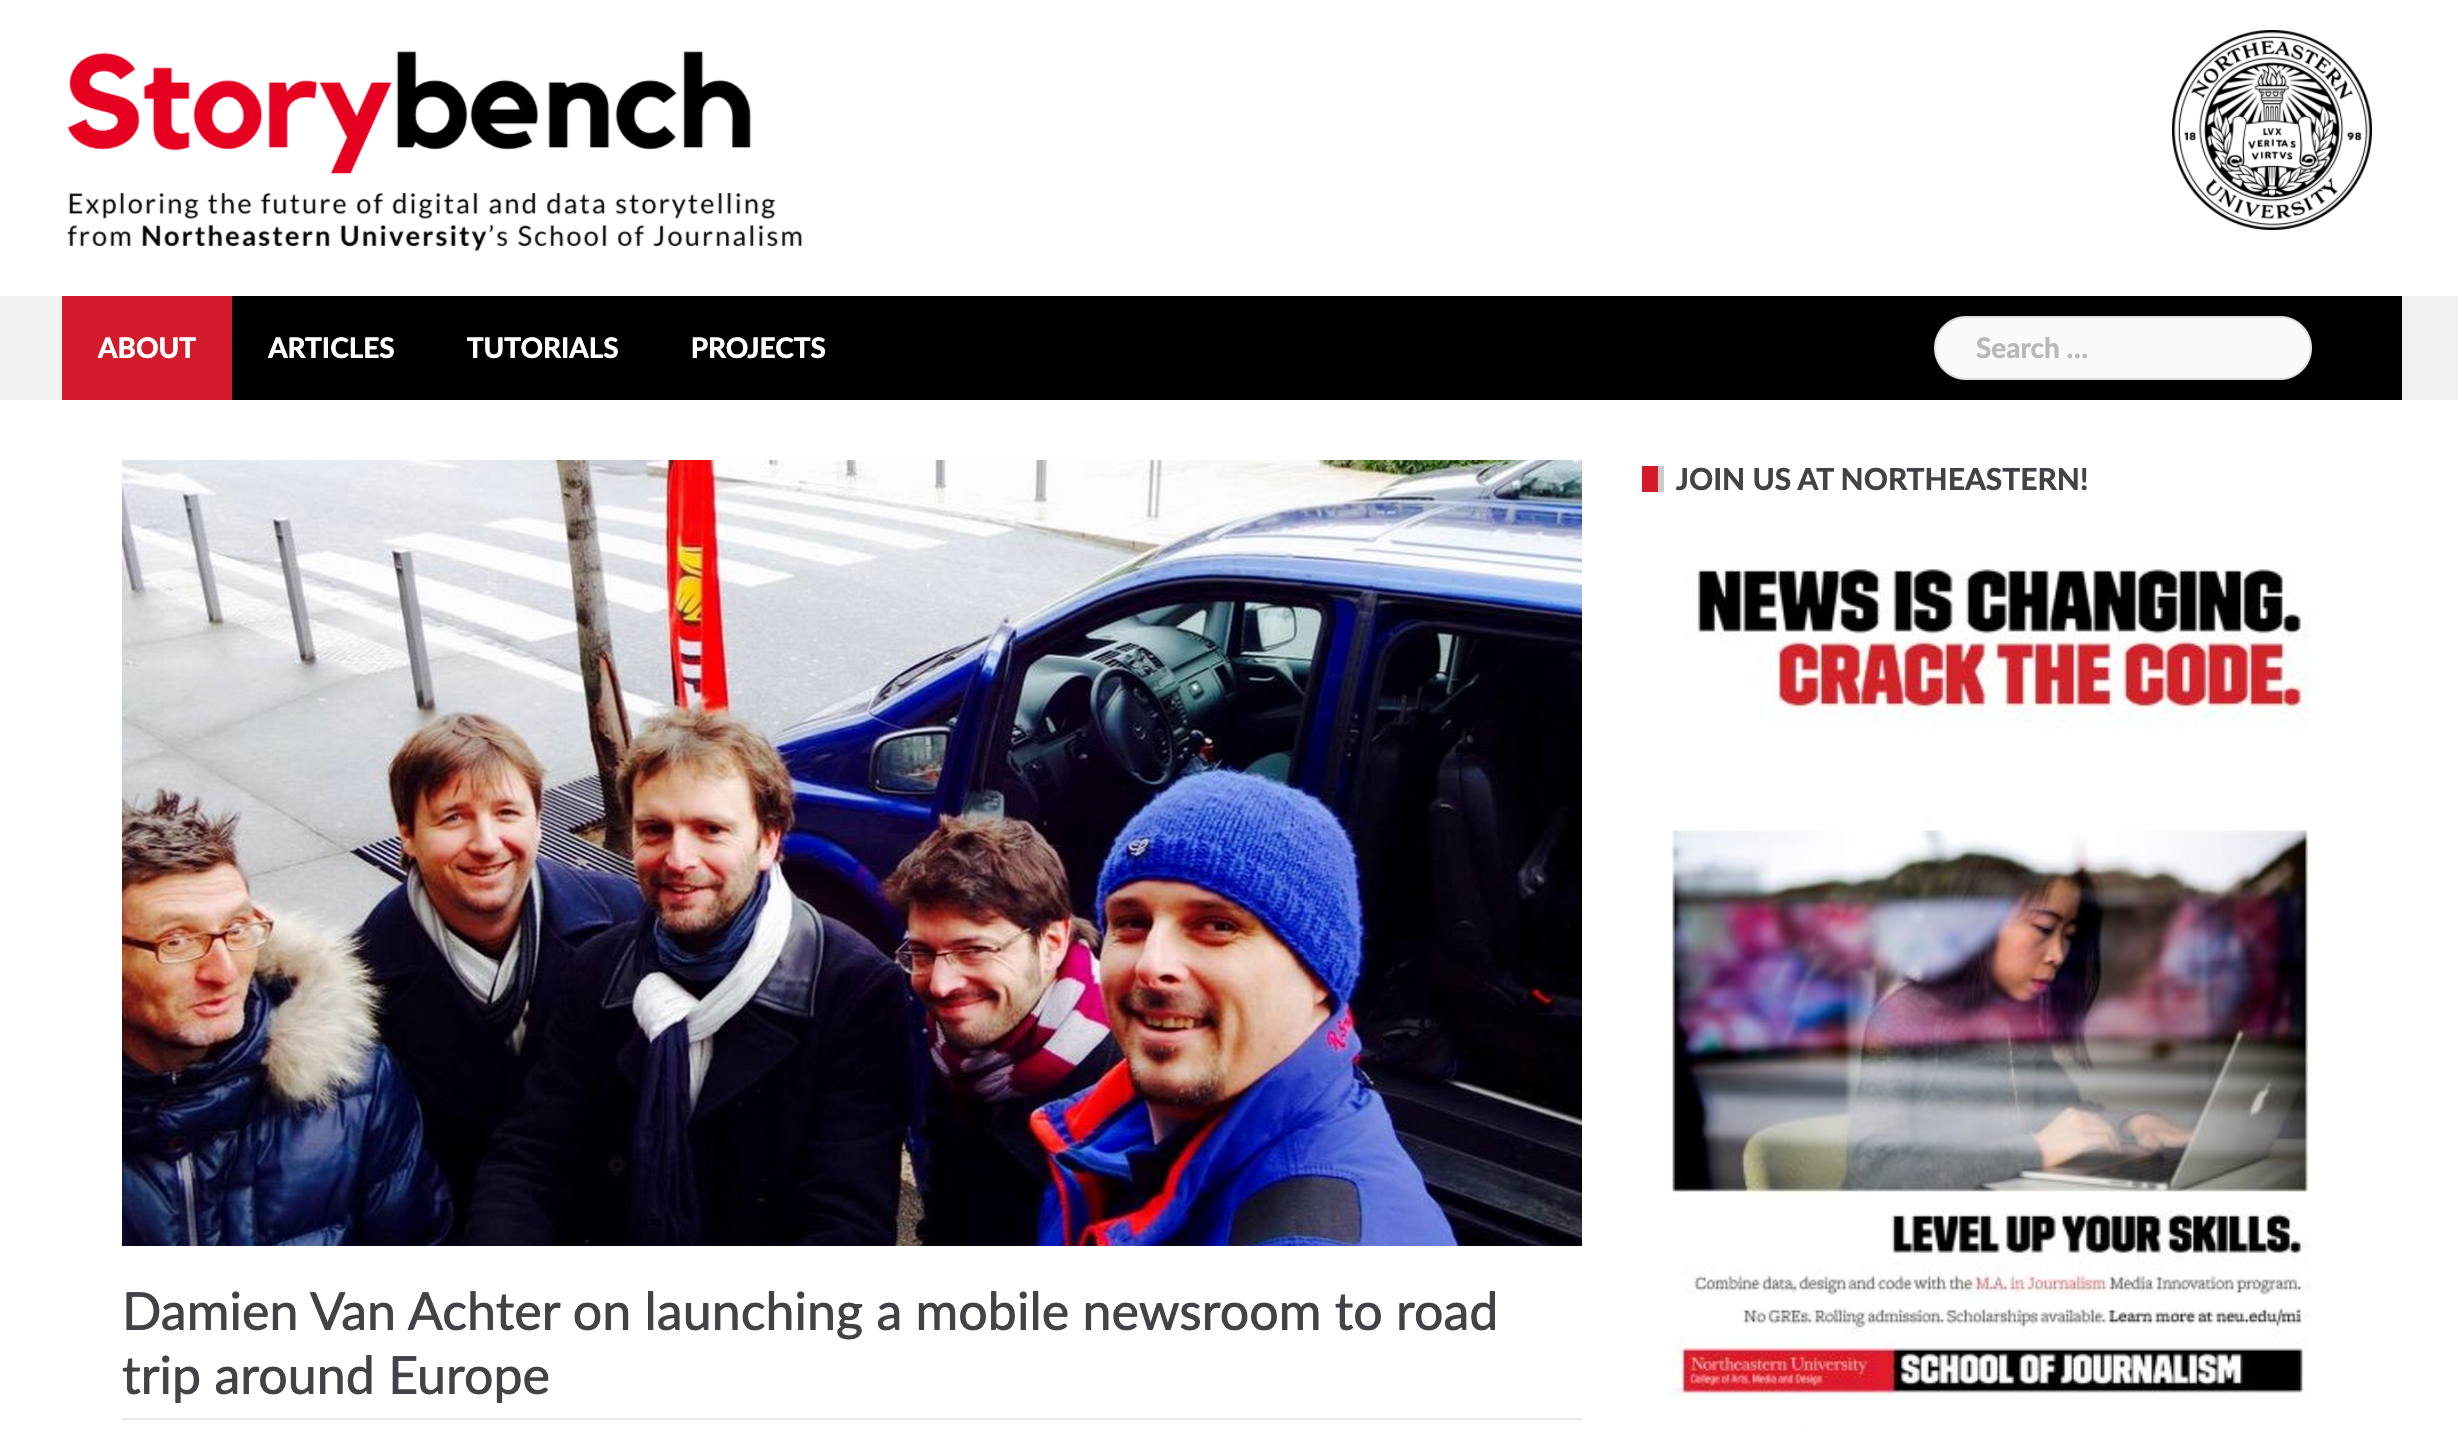 Damien Van Achter on launching a mobile newsroom to road trip around Europe